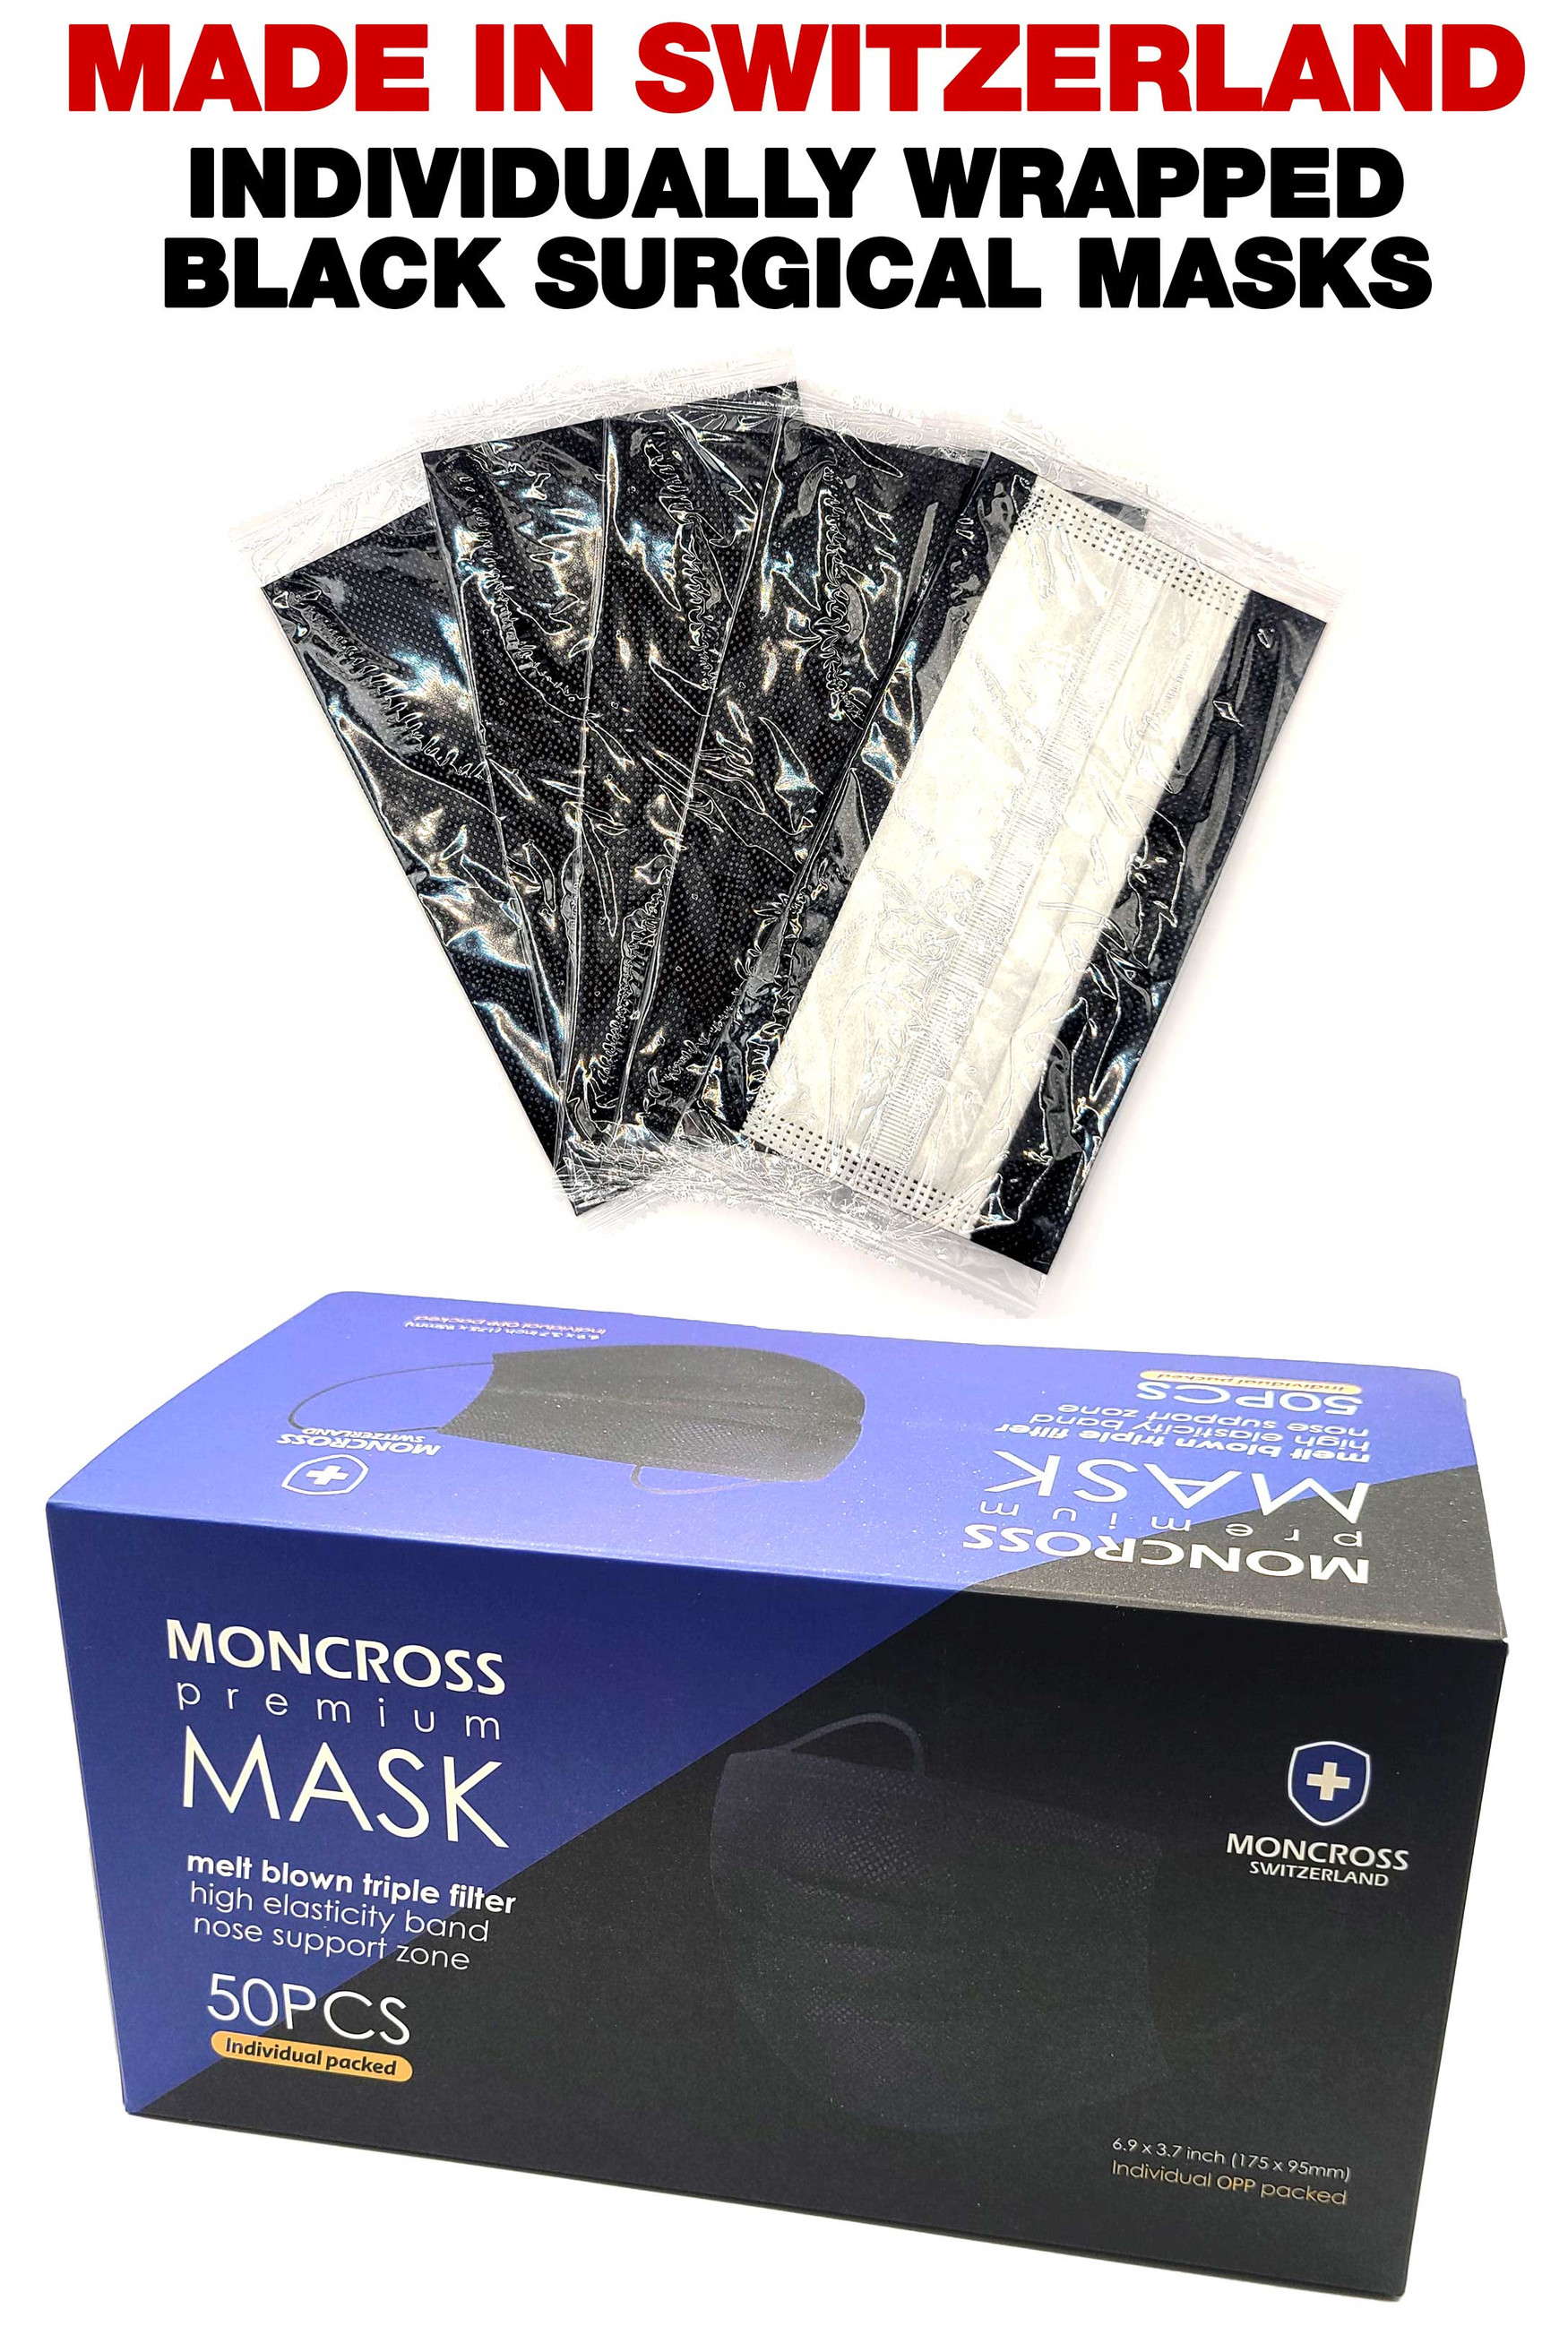 Premium Black Surgical Masks - 50 Pack - Individually Wrapped - Made in Switzerland